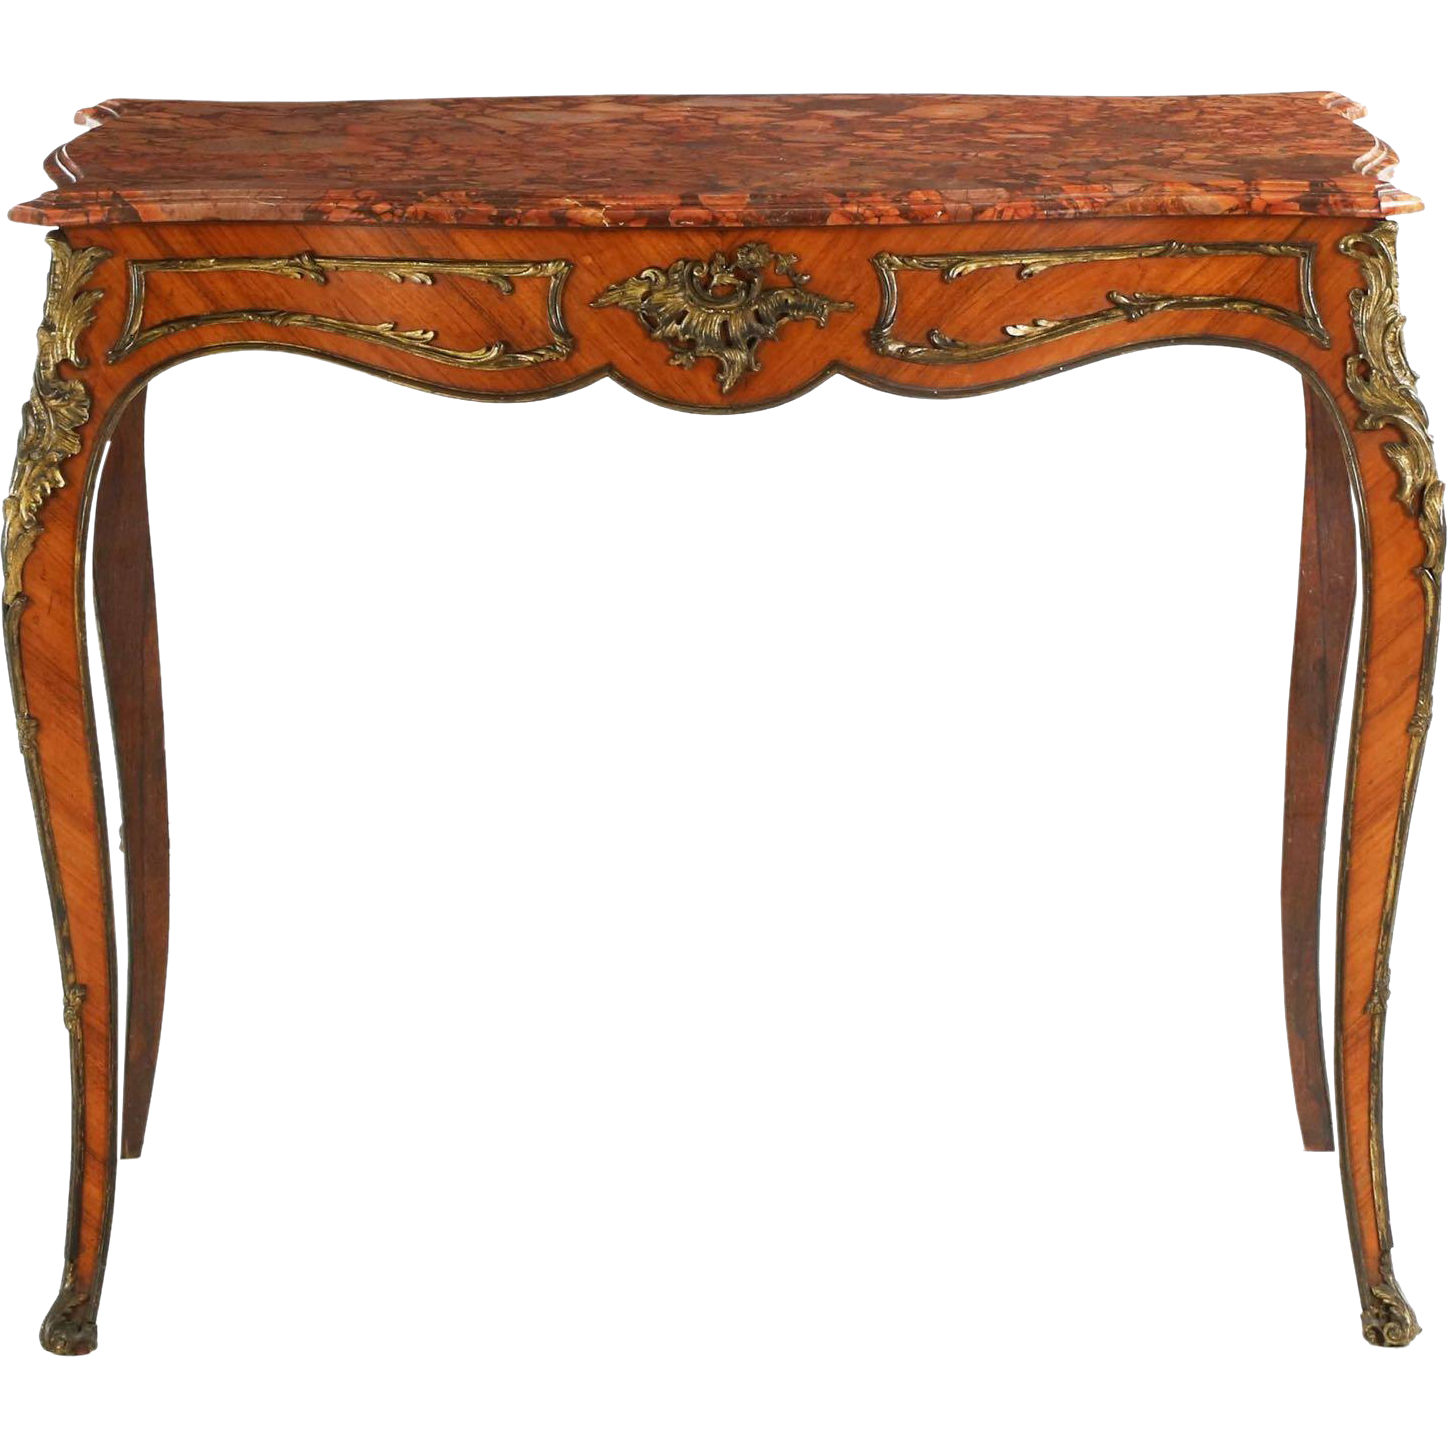 french louis xv style antique center table 19th century from sillafineantiques on ruby lane. Black Bedroom Furniture Sets. Home Design Ideas